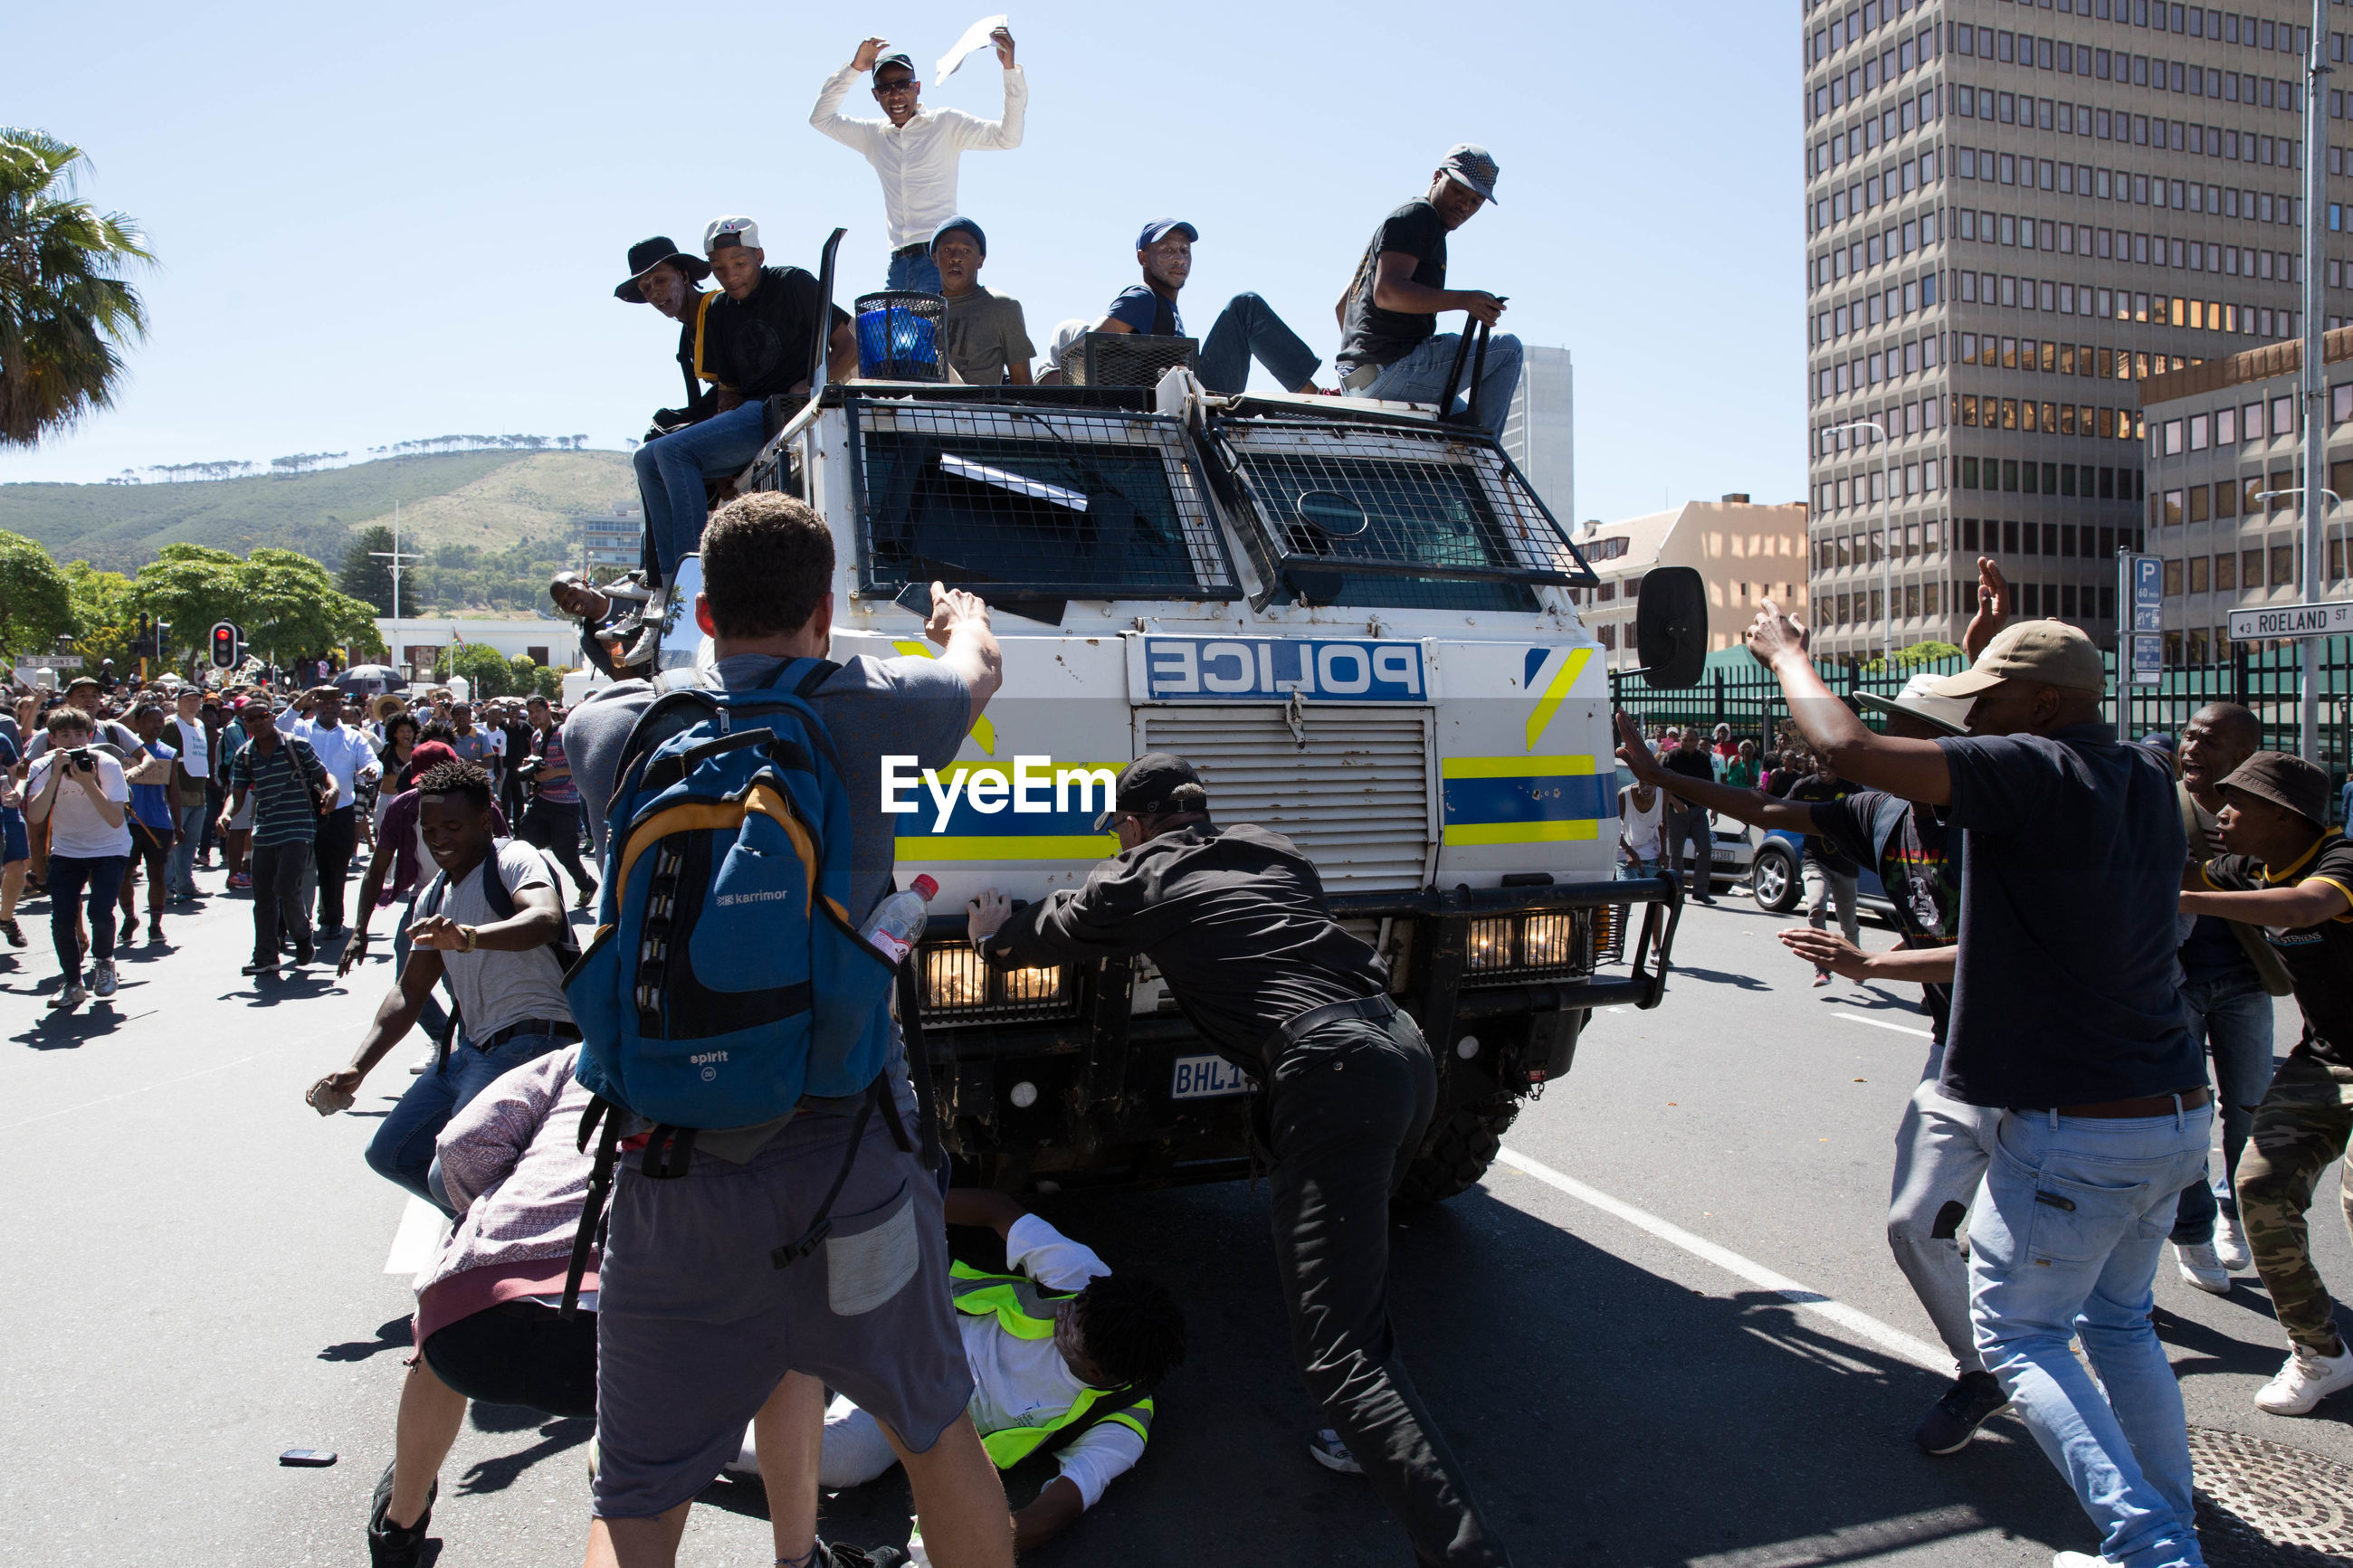 men, police force, real people, building exterior, large group of people, authority, architecture, protestor, police uniform, justice - concept, built structure, day, outdoors, togetherness, shield, riot, city, sky, police station, people